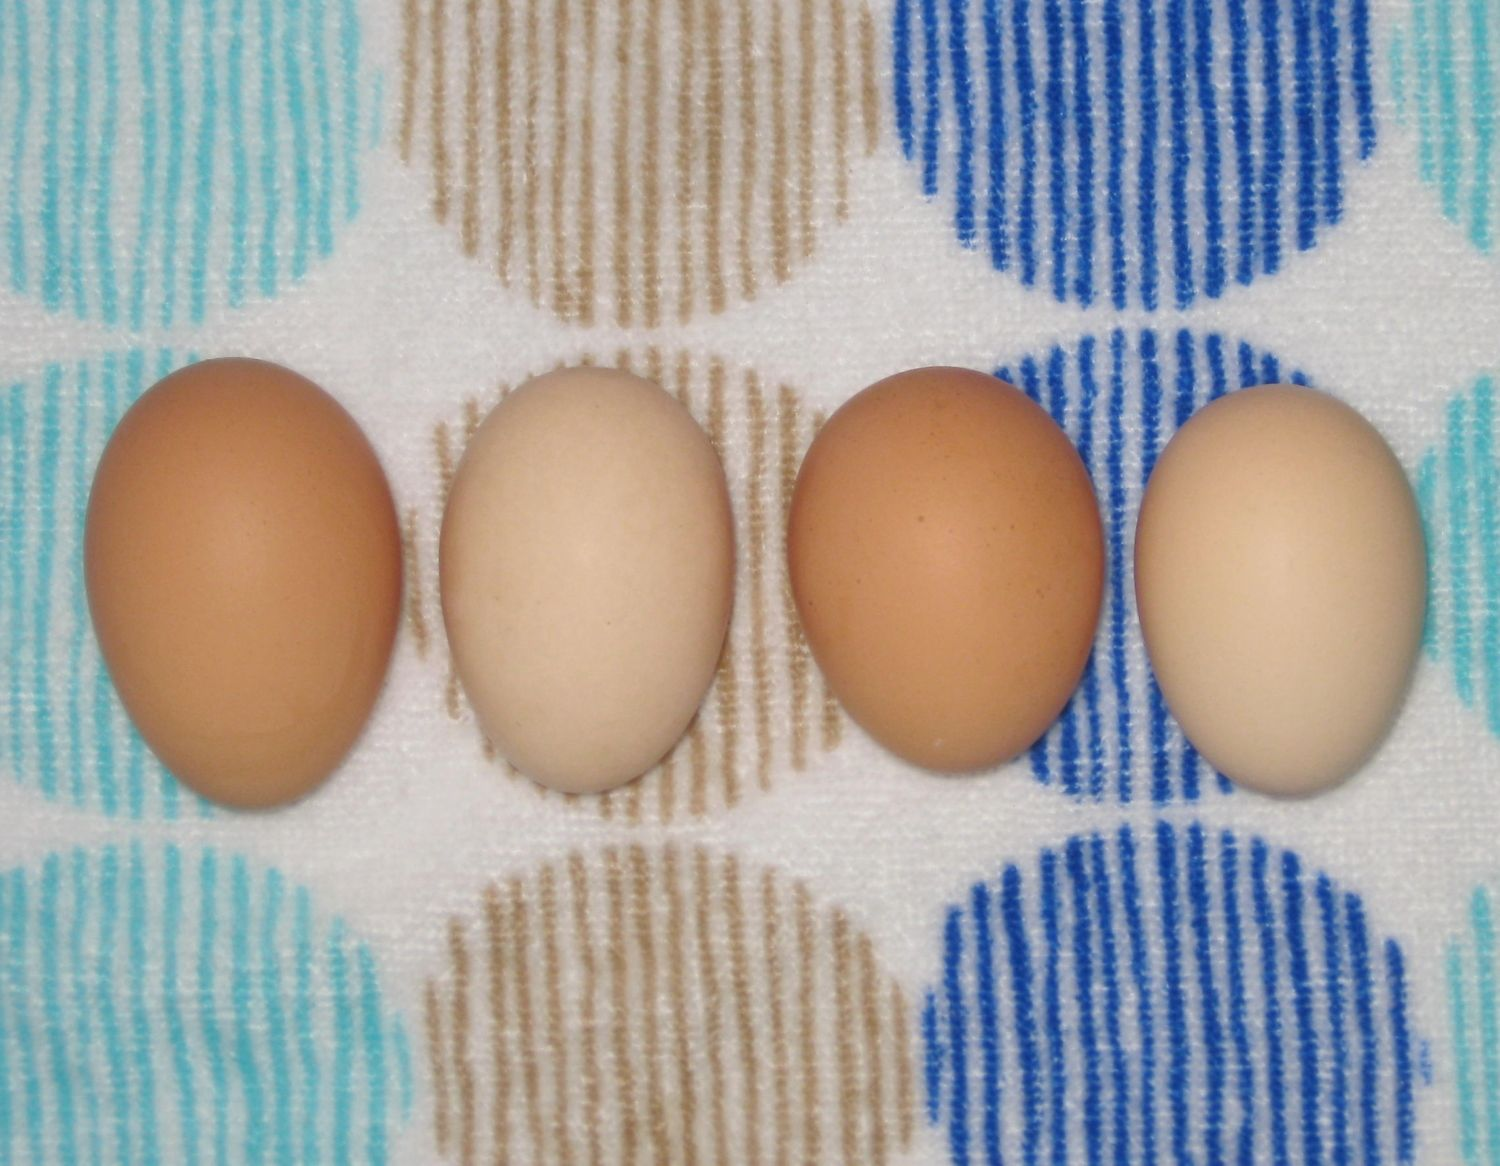 How To Raise Laying Hens In Your Backyard 25 Bsta Baby